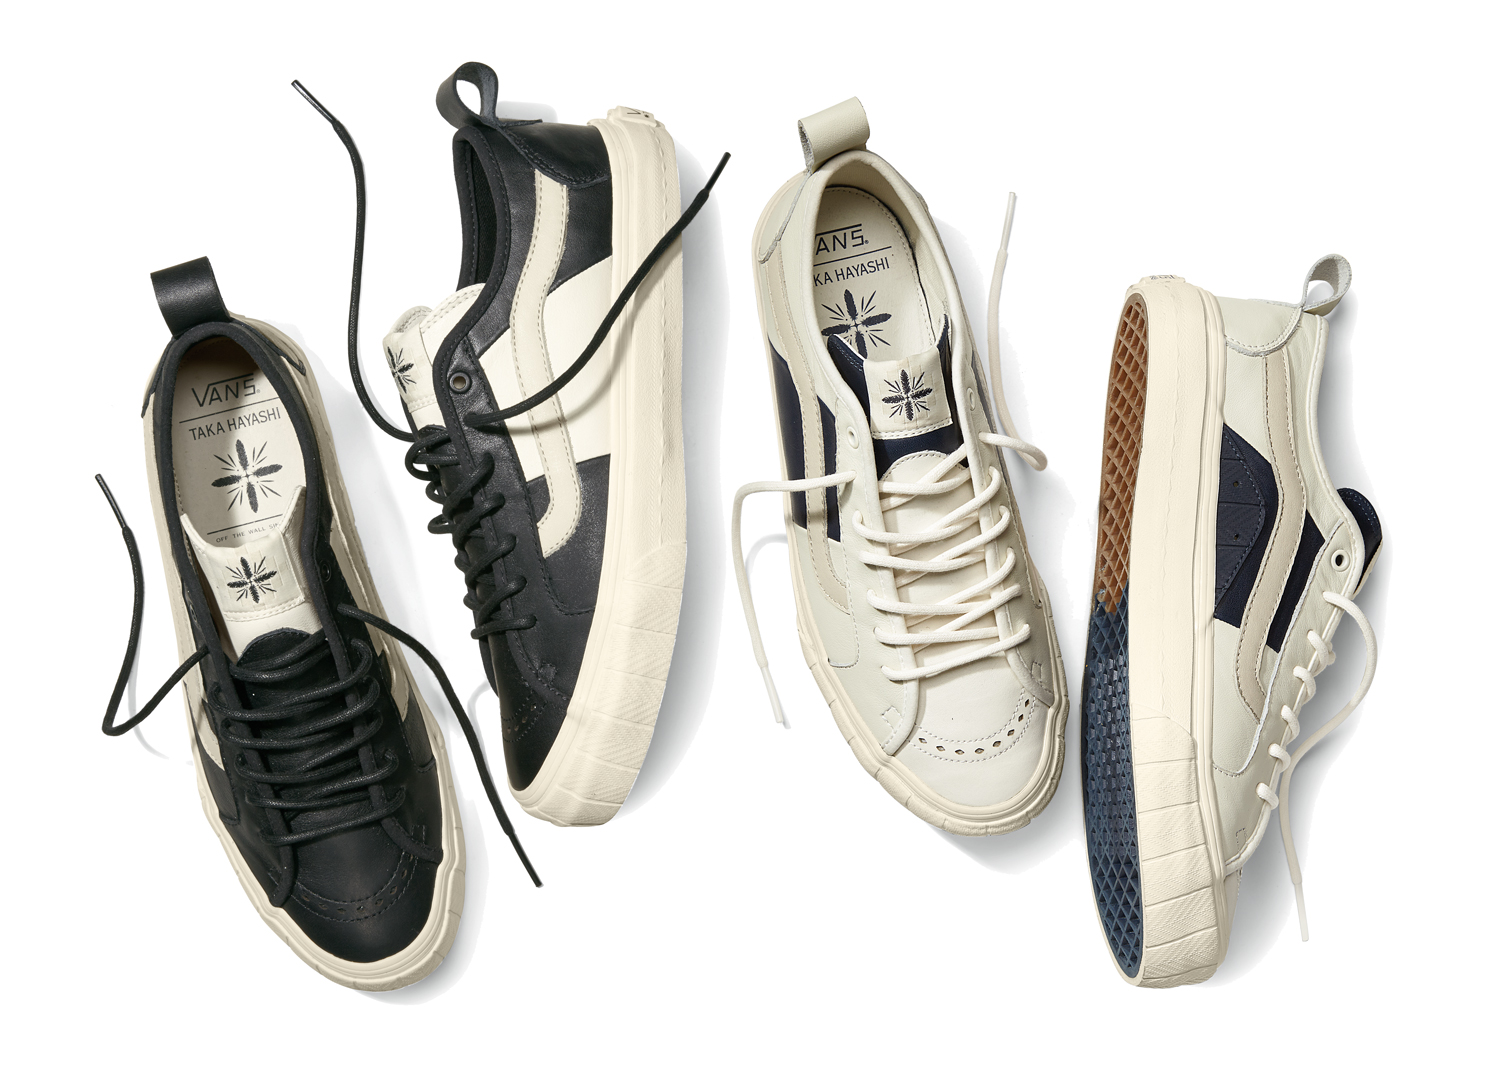 cee88128ba Vault by Vans x Taka Hayashi TH Court Lo LX Colorways for Spring 2015